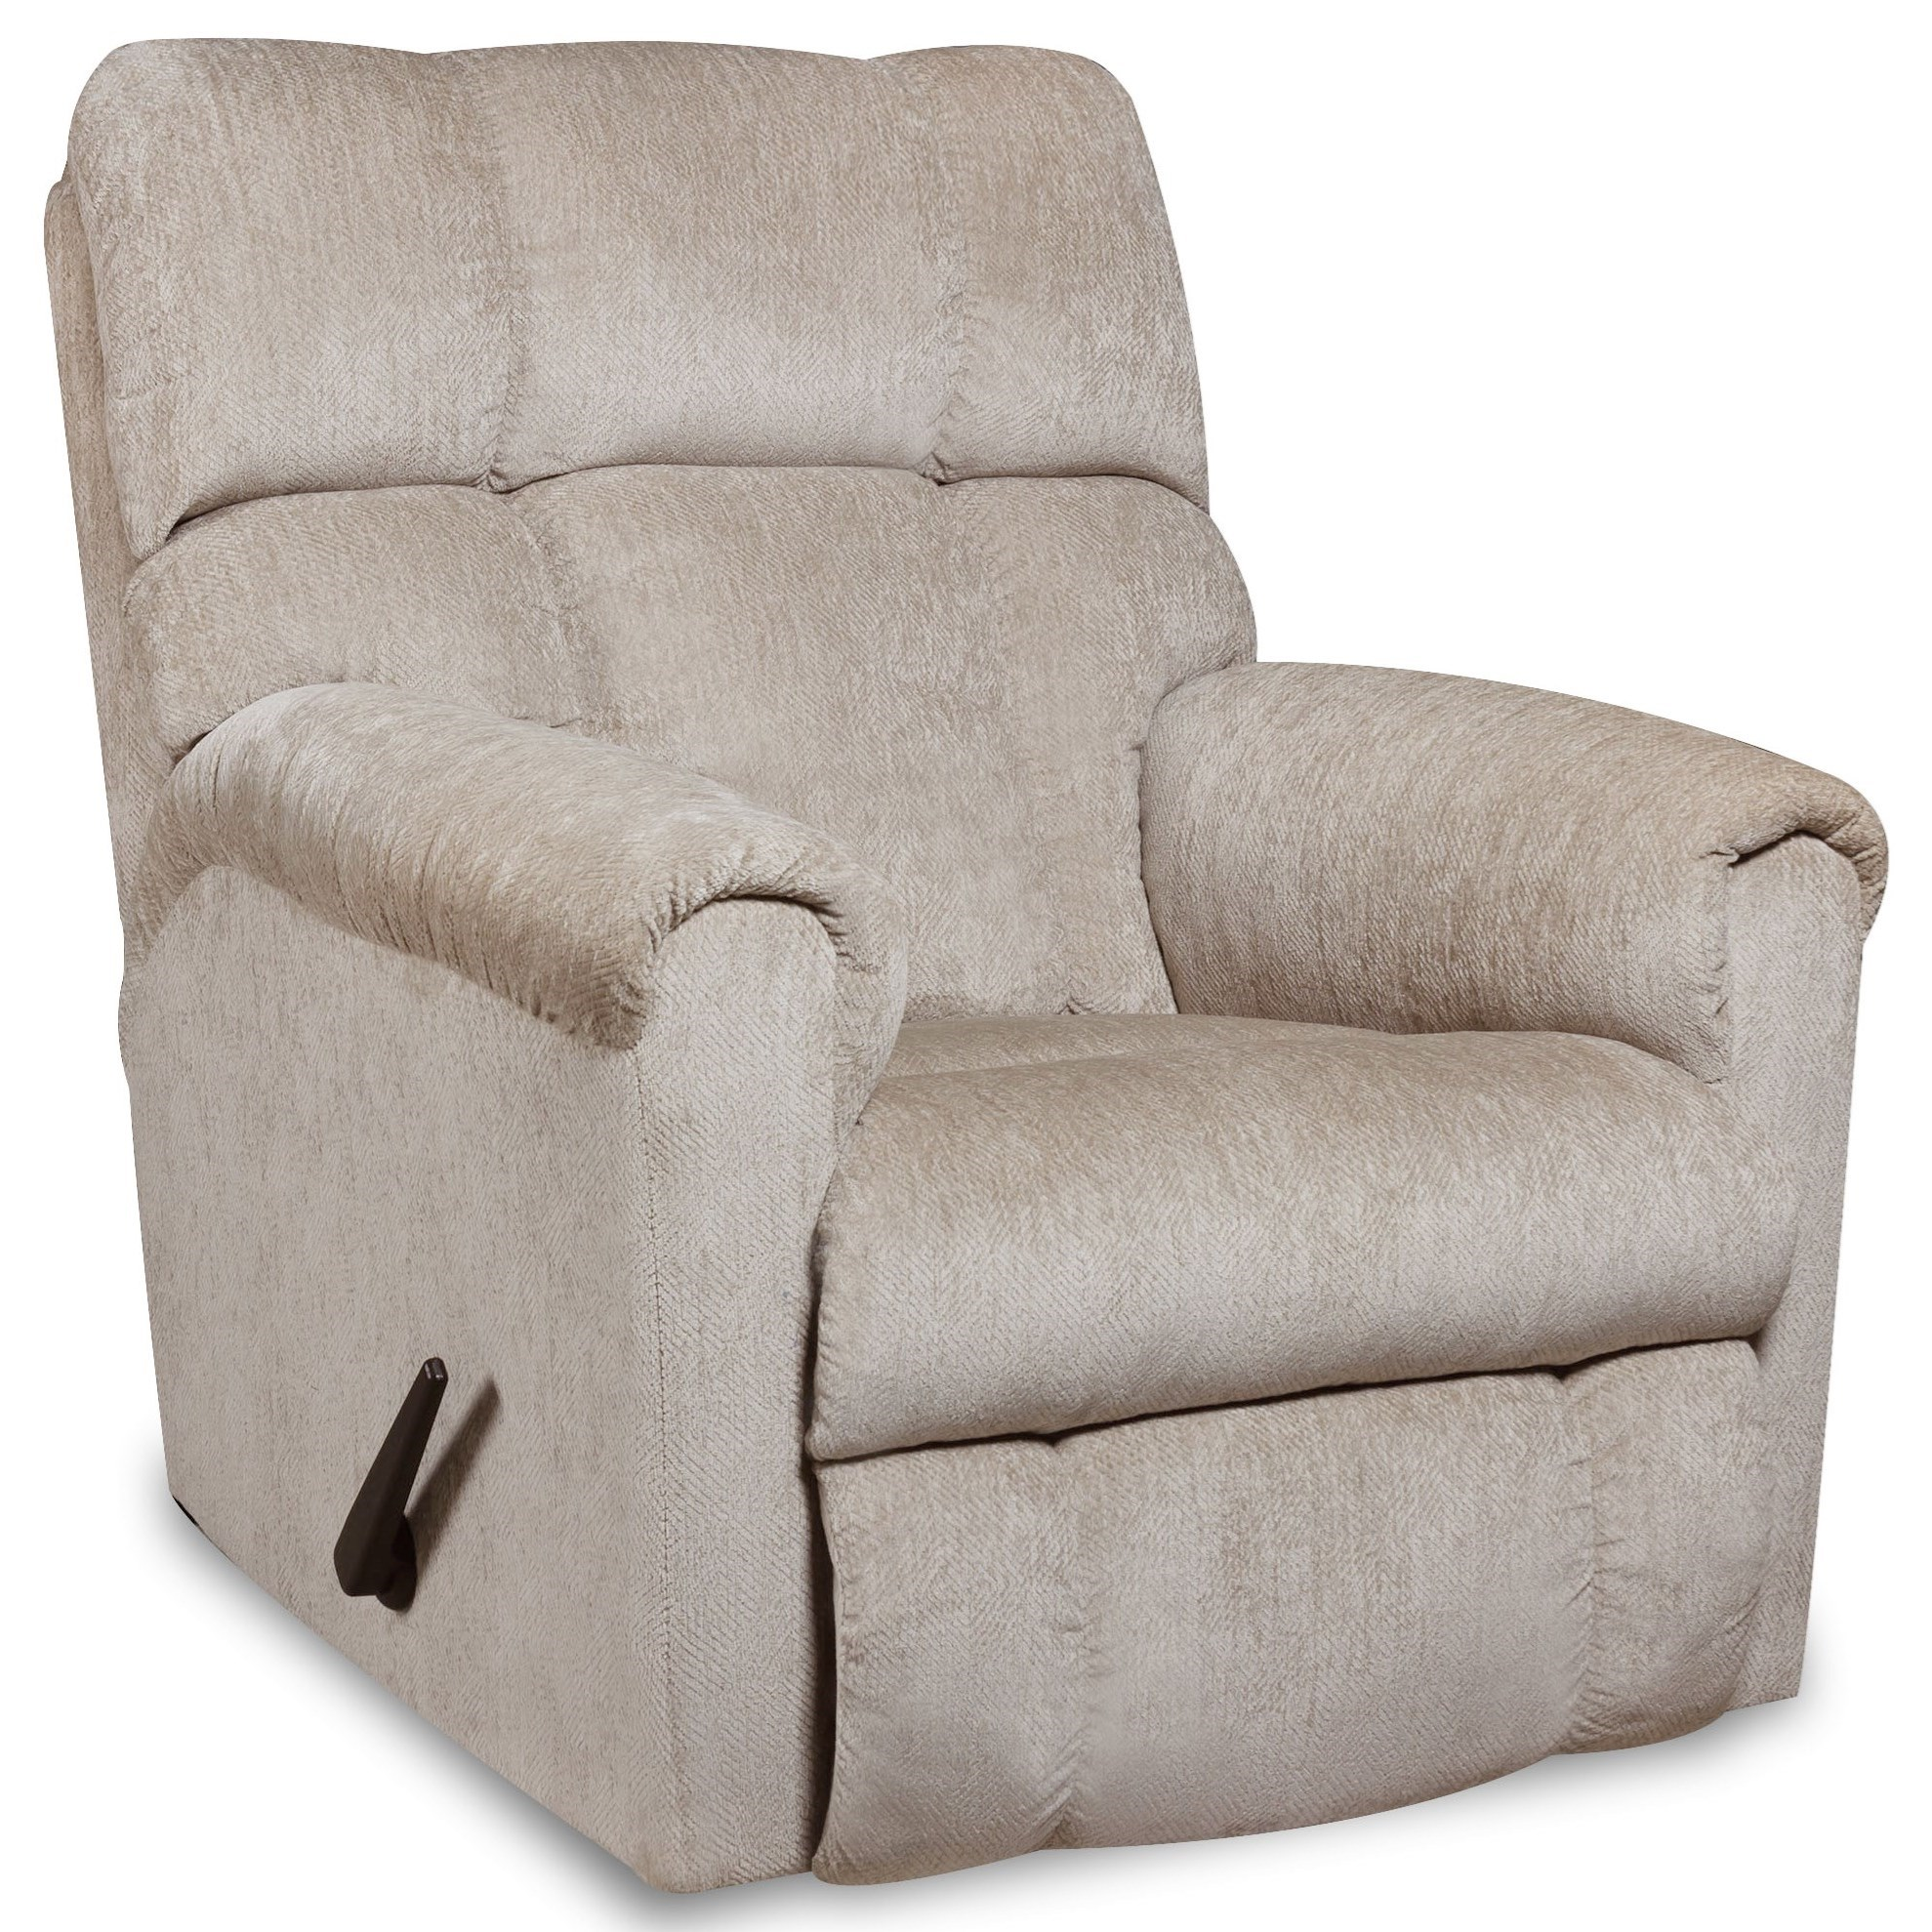 134 Chaise Recliner by HomeStretch at Wilcox Furniture